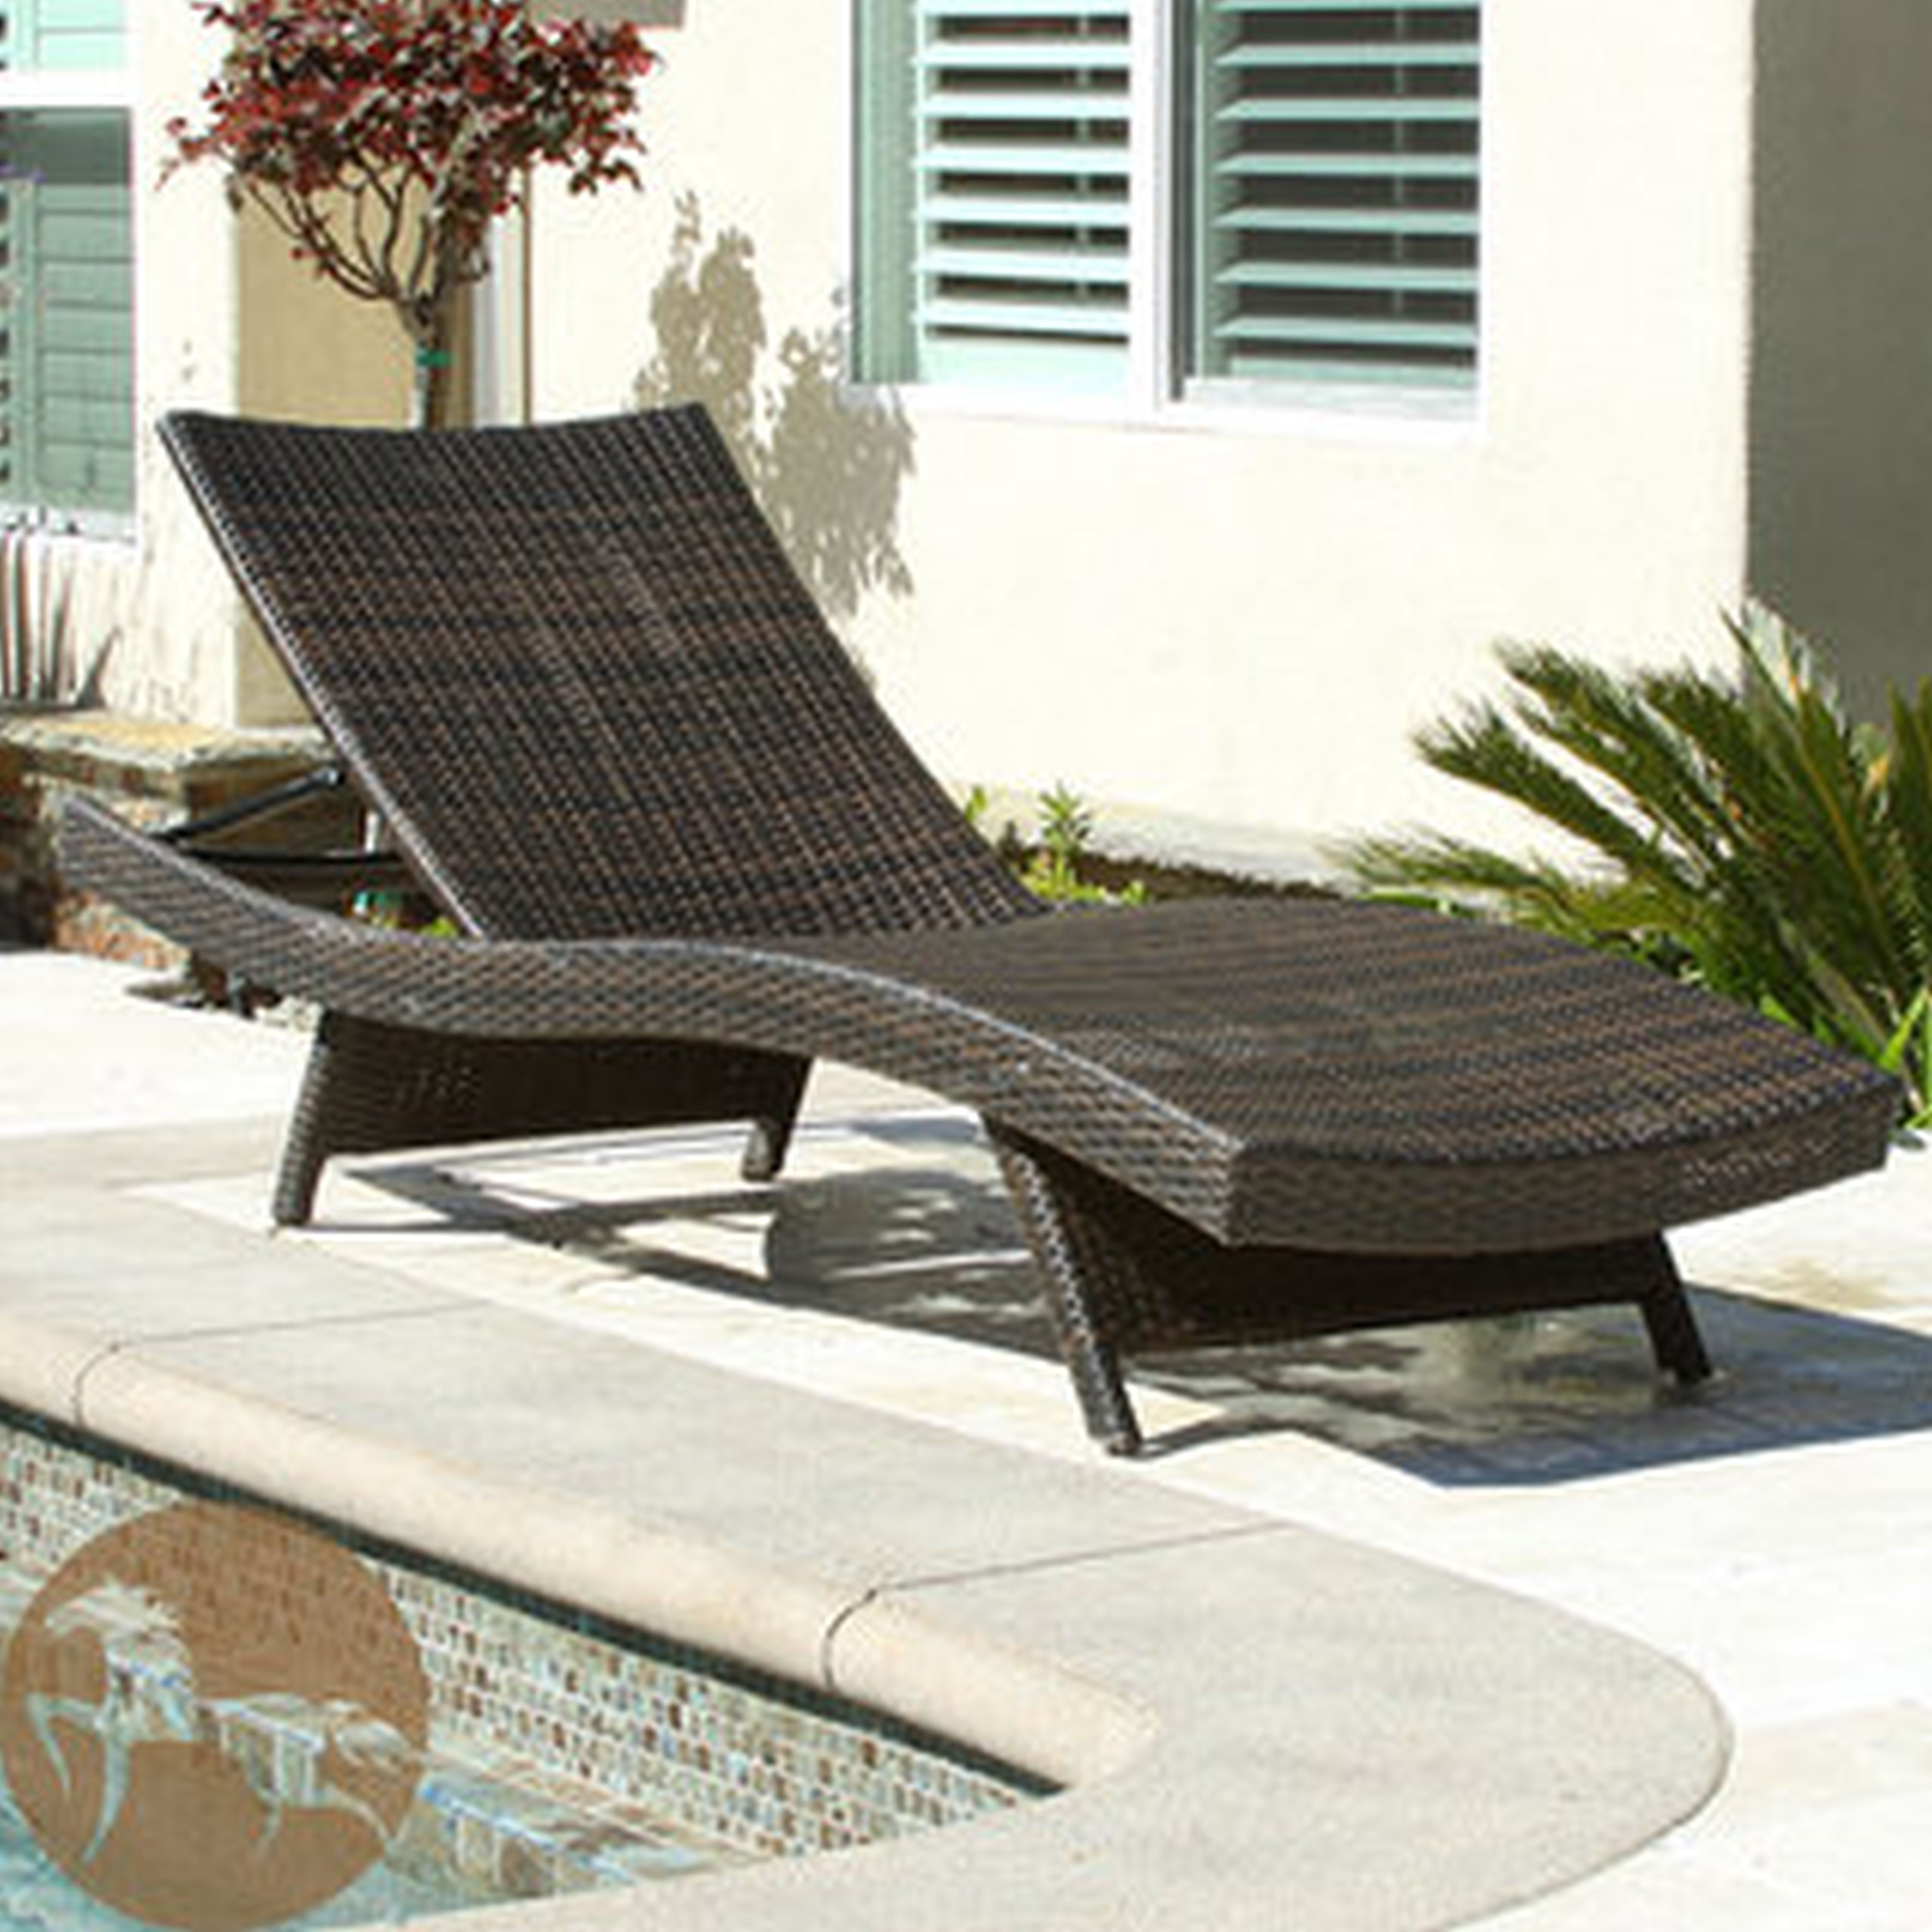 Outdoor : Patio Chaise Lounge Chairs Pool Lounge Chairs Chaise In Latest Contemporary Outdoor Chaise Lounge Chairs (View 12 of 15)